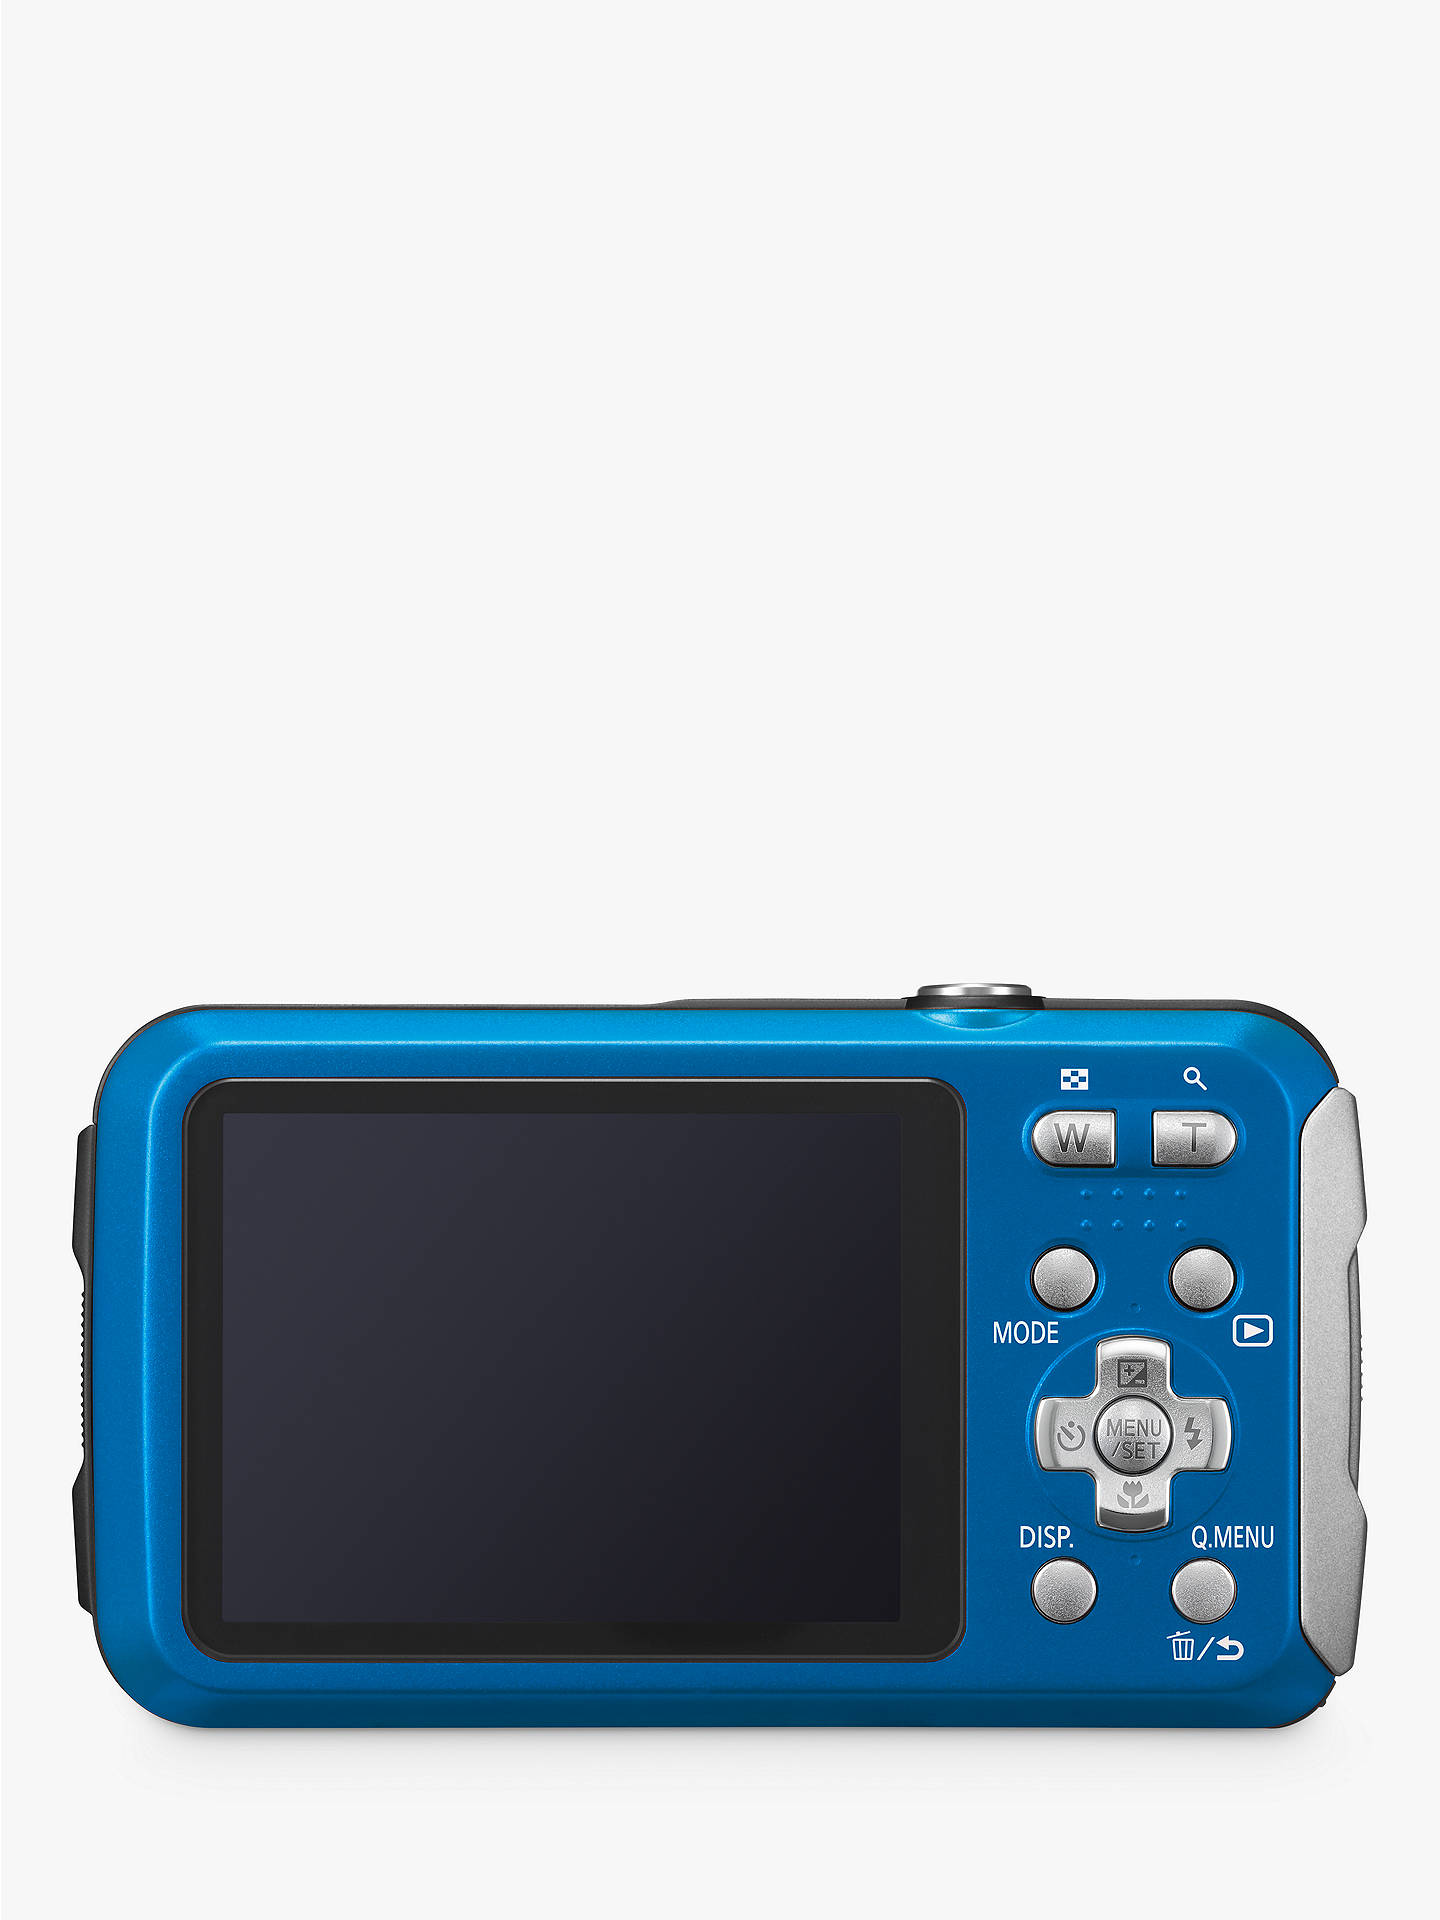 BuyPanasonic Lumix DMC-FT30 Waterproof Camera, 16.1MP, 4x Optical Zoom, 2.7 LCD Screen Online at johnlewis.com